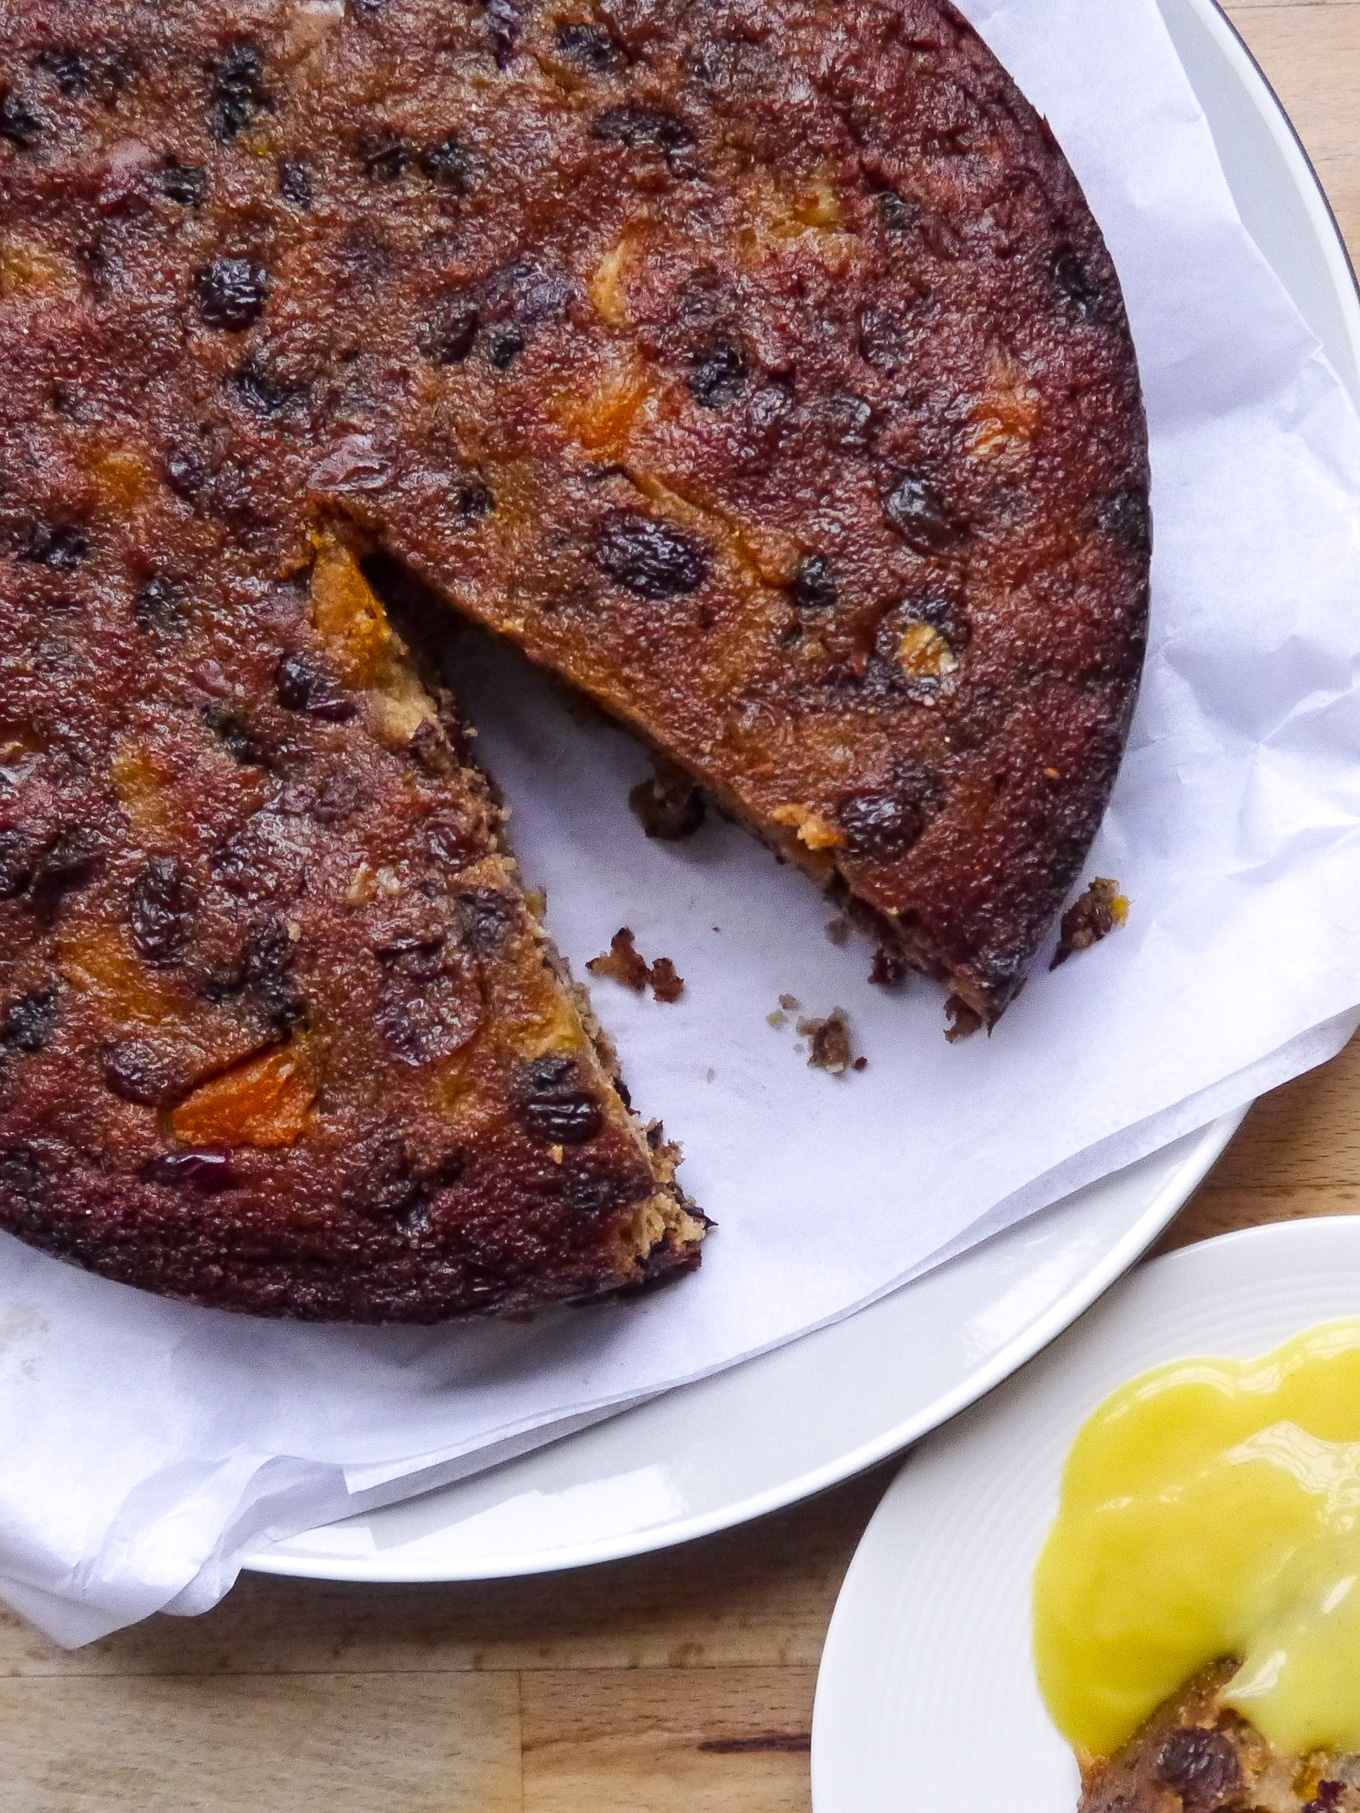 This week's recipe – a healthy Christmas cake